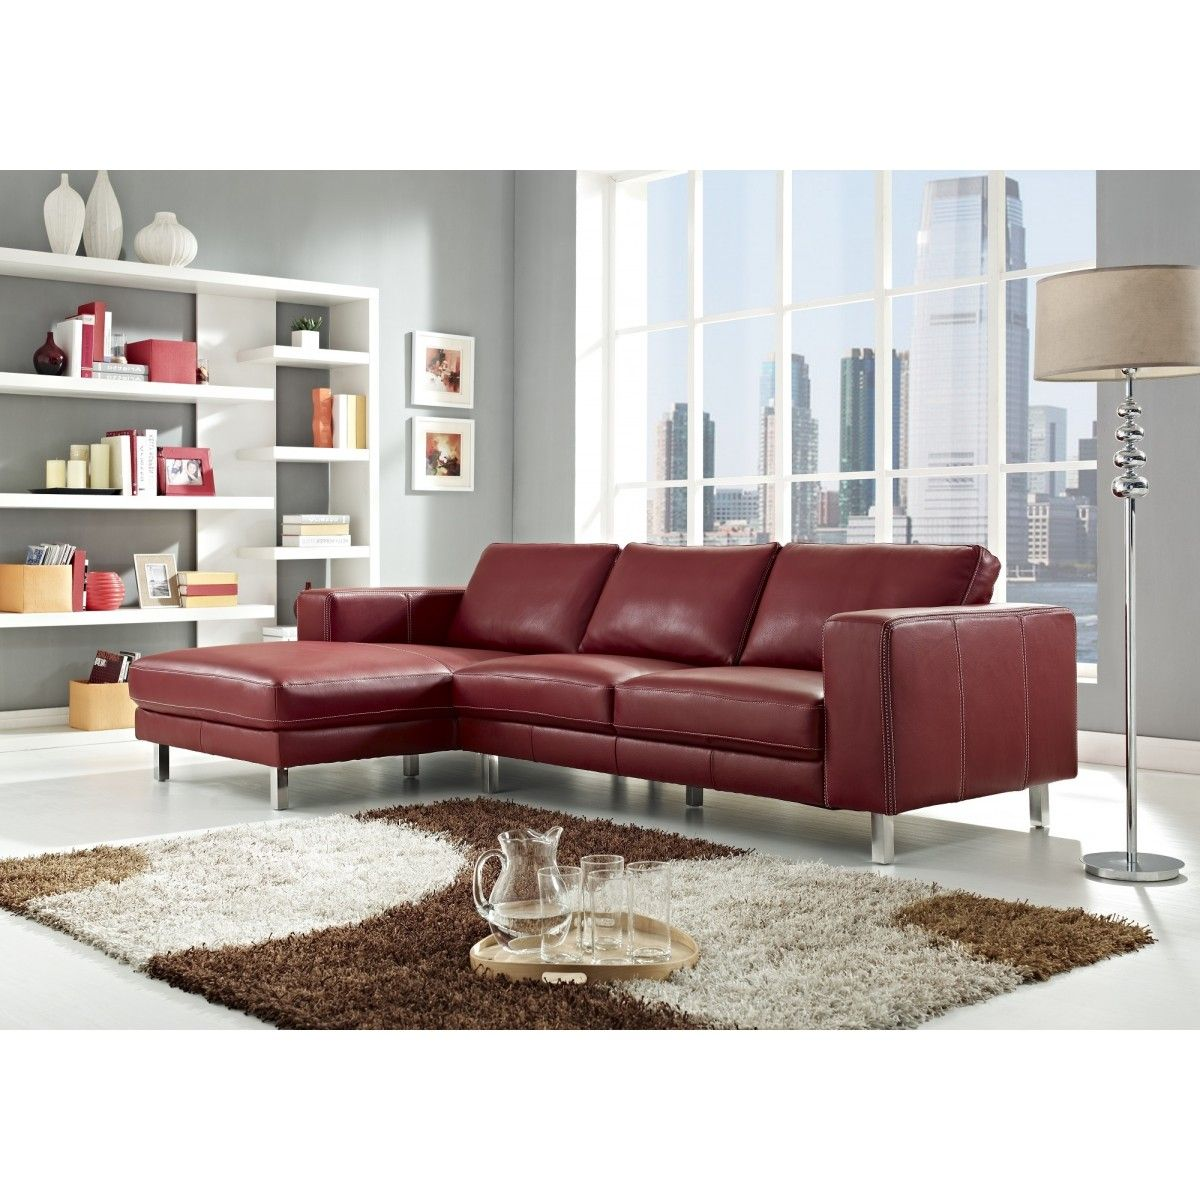 - Anika Red Full Top Grain Leather Sectional Sofa By Creative